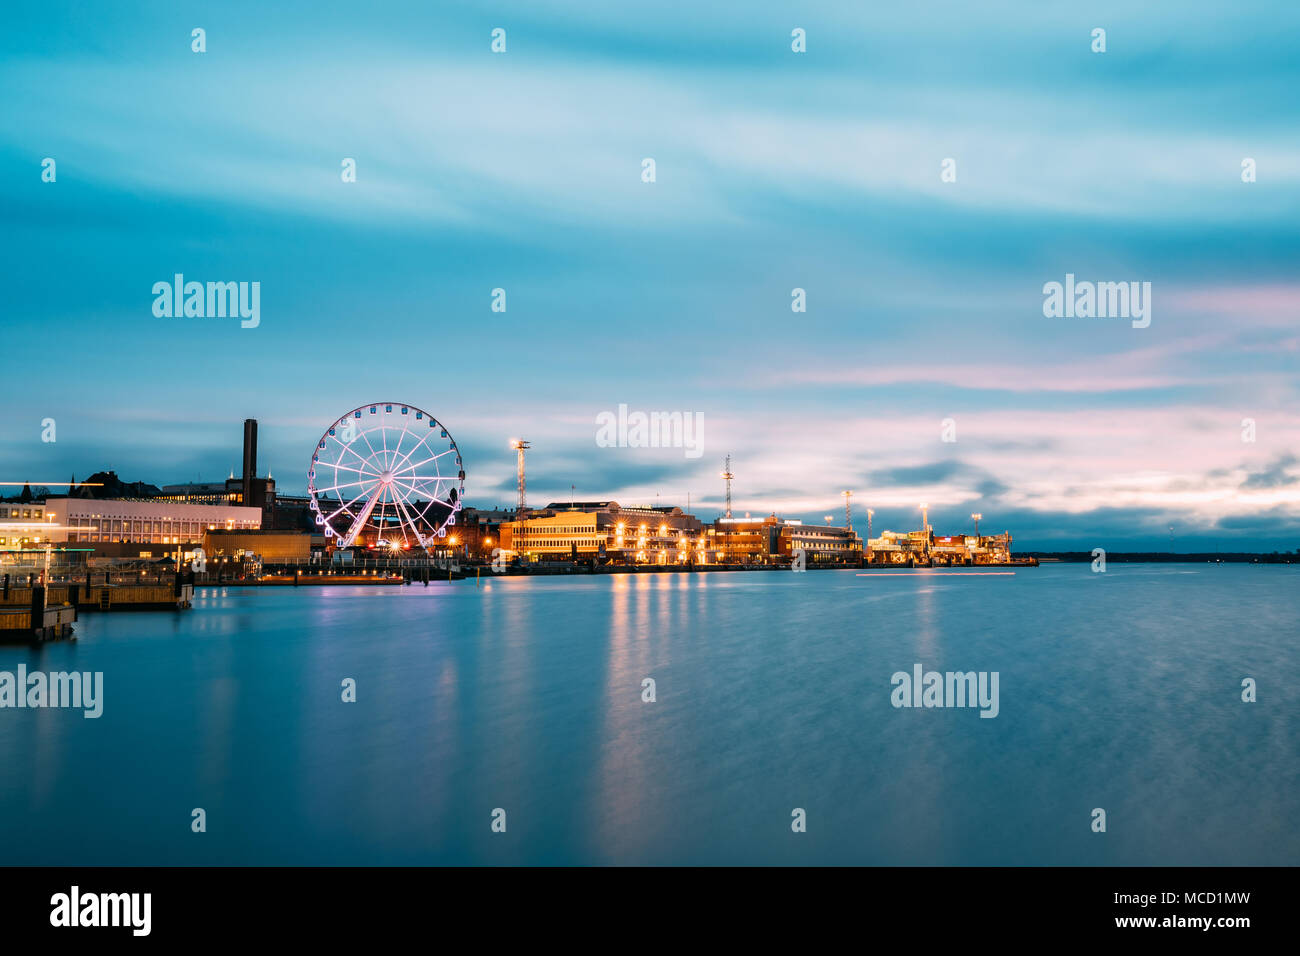 Helsinki, Finland - December 9, 2016: View Of Embankment With Ferris Wheel In Evening Night Illuminations. - Stock Image